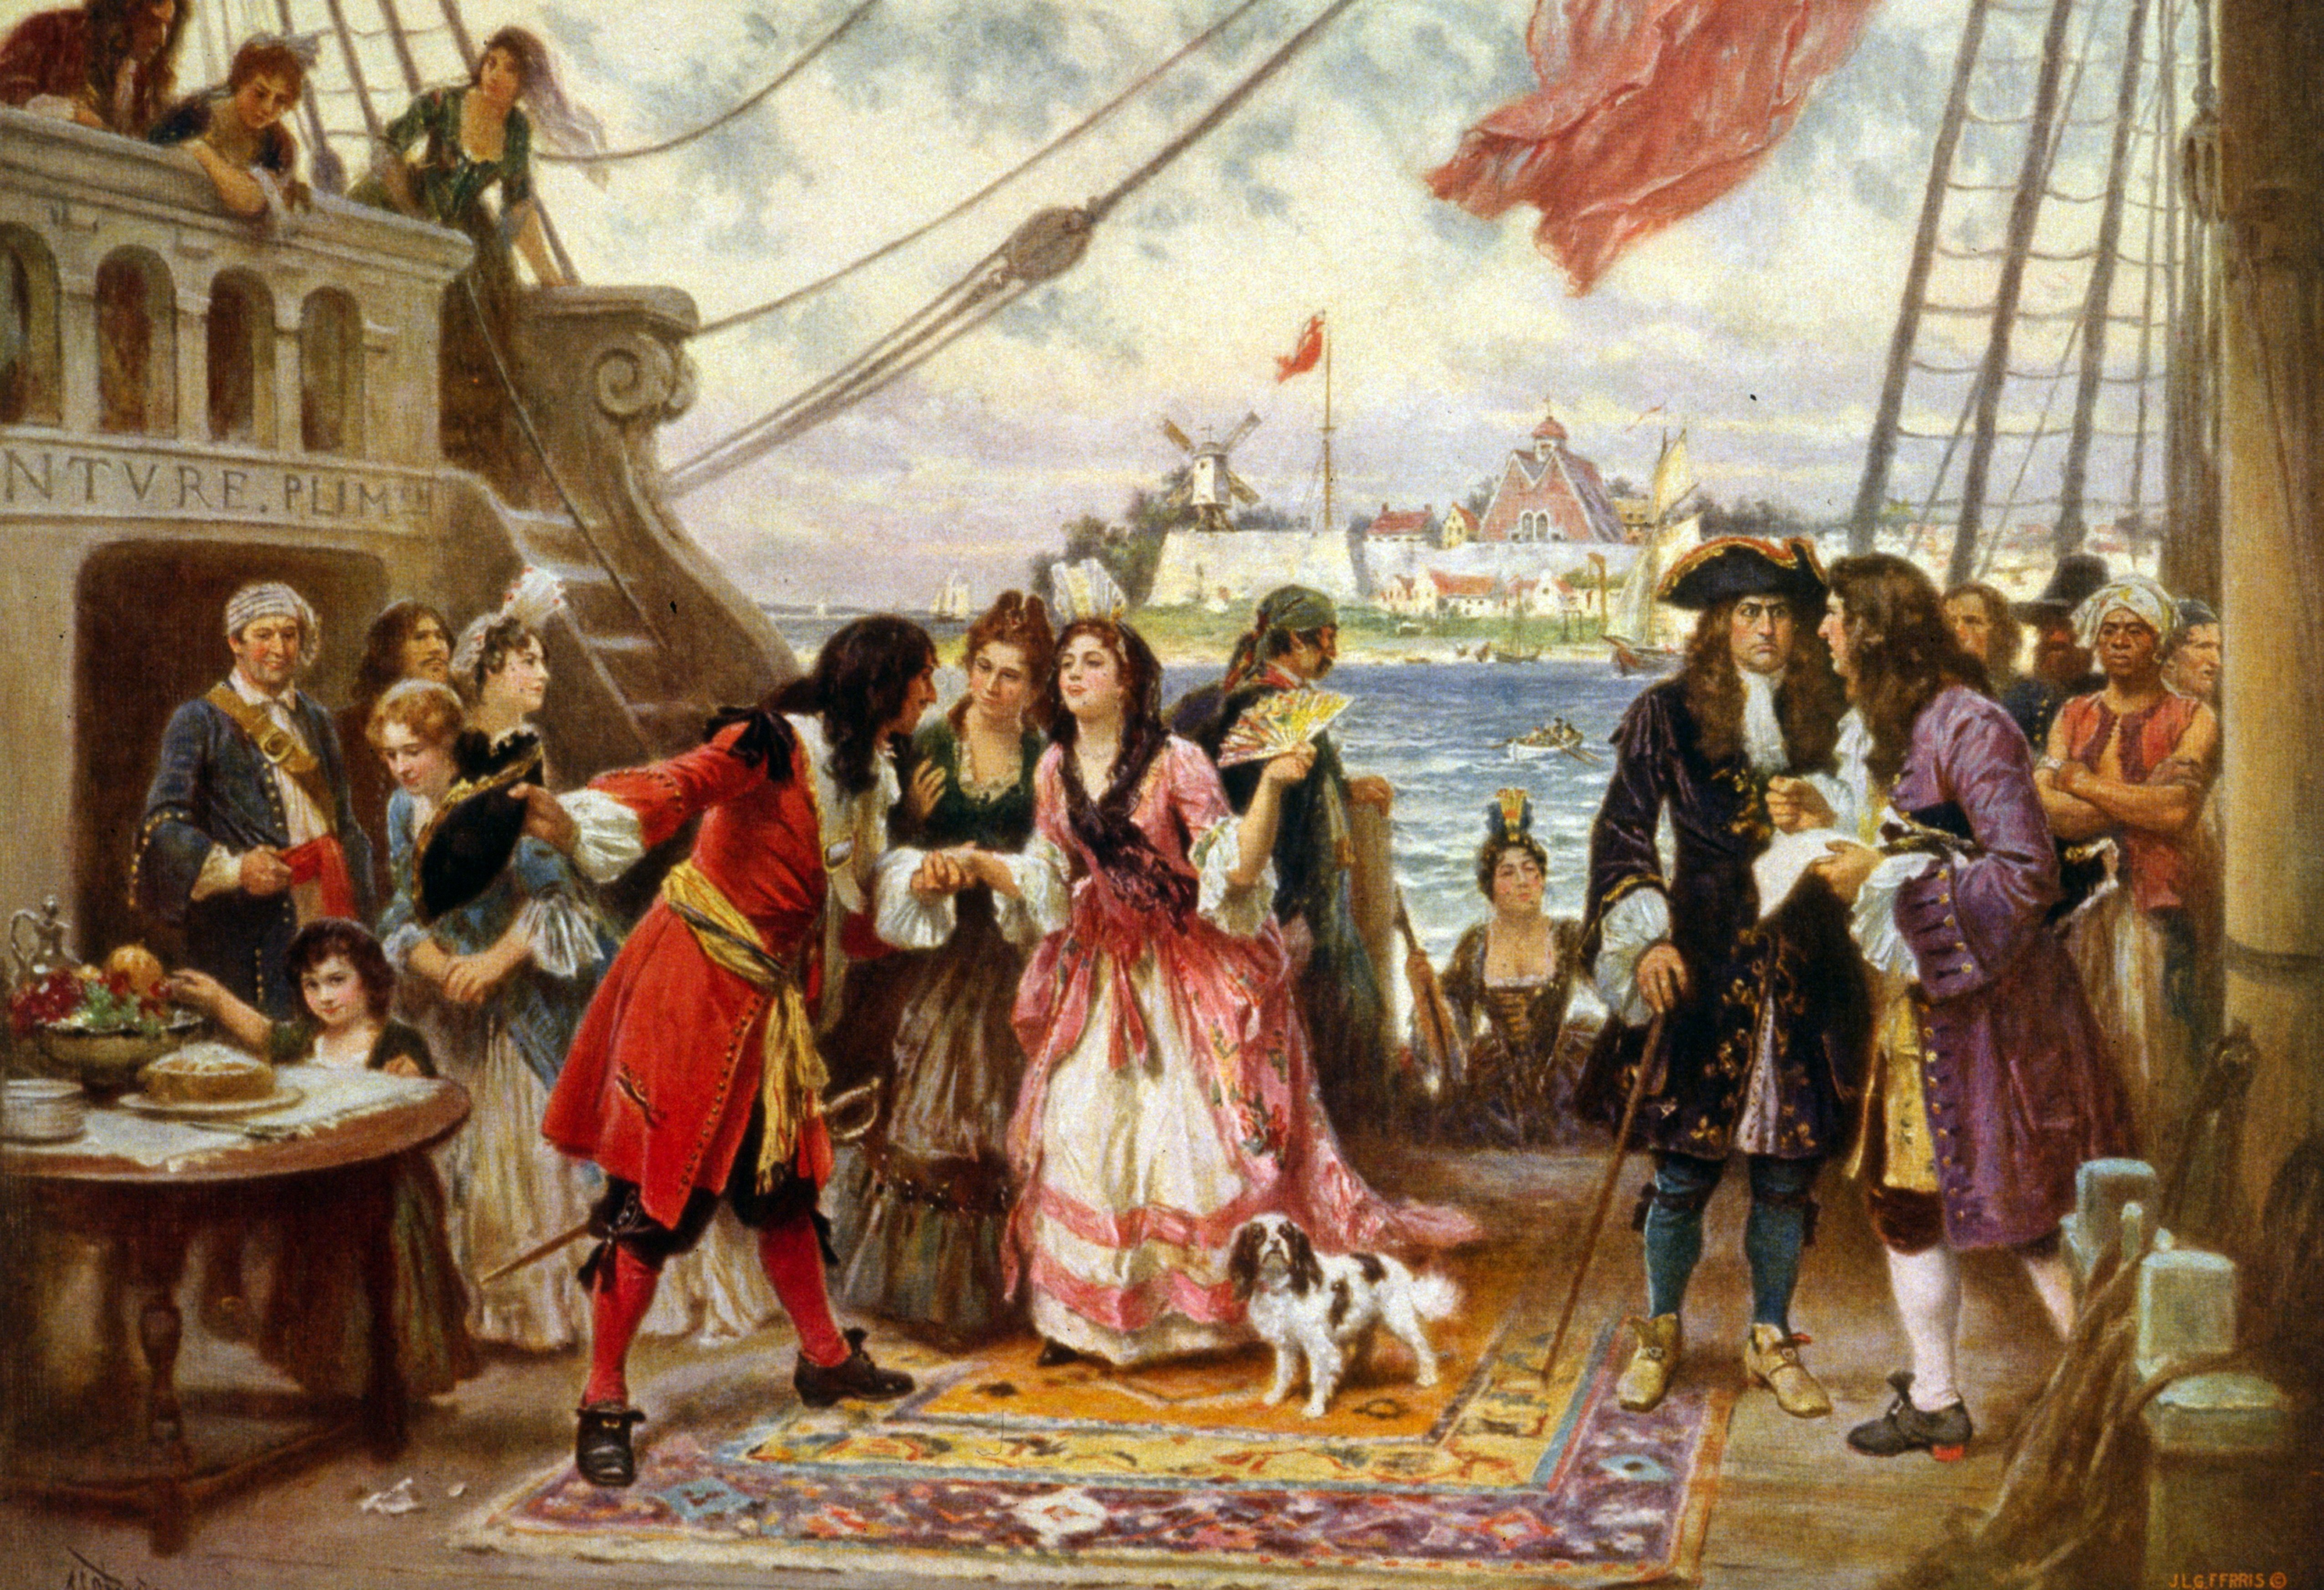 Captain Kidd in New York Harbour by Jean Leon Gerome Ferris. Captain William Kidd welcoming a young woman on board his ship; other men and women crowd the deck as another woman steps aboard.